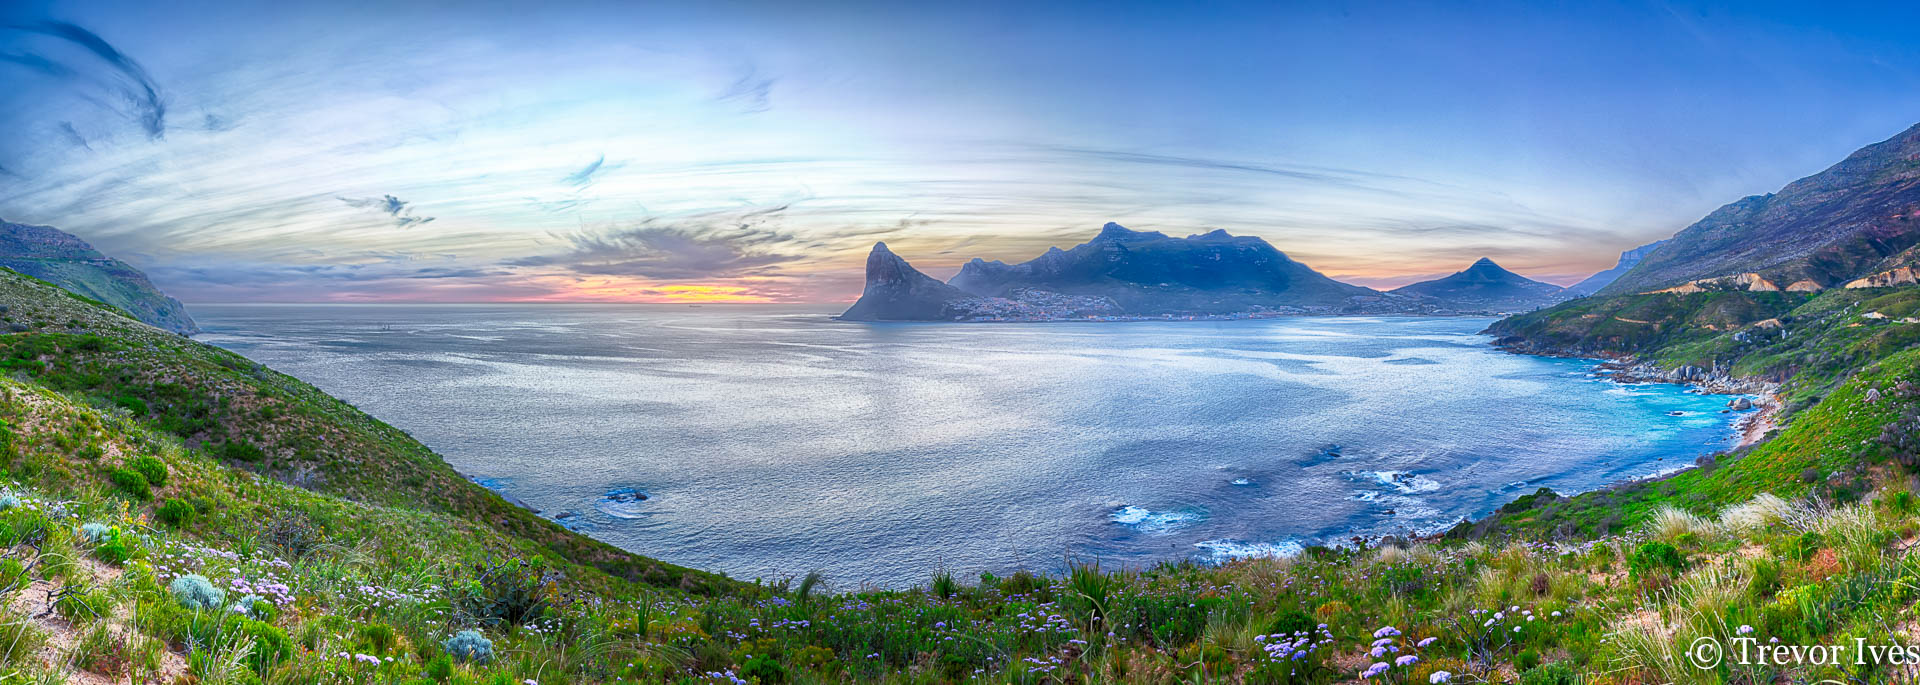 chappies-pano